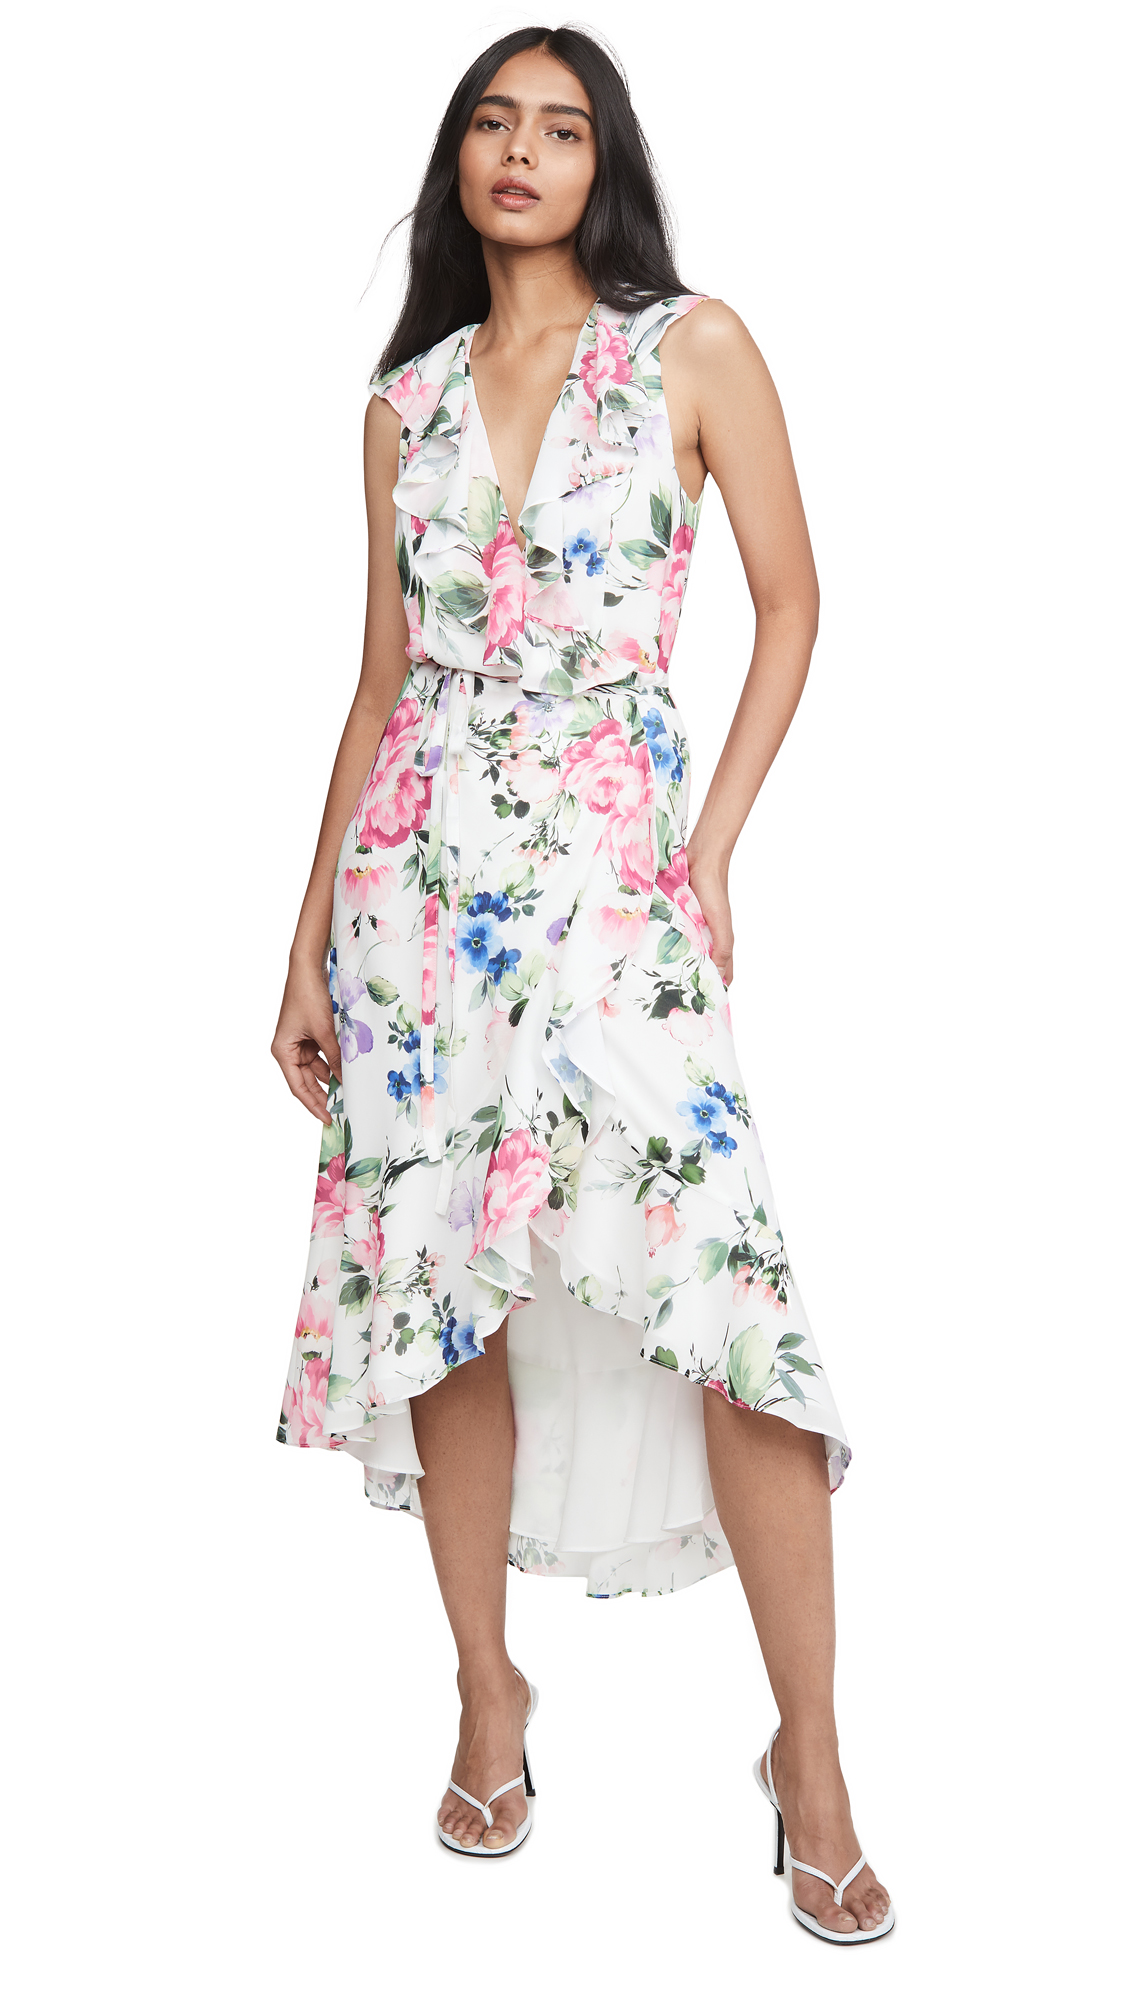 Yumi Kim Nantucket Dress - 70% Off Sale